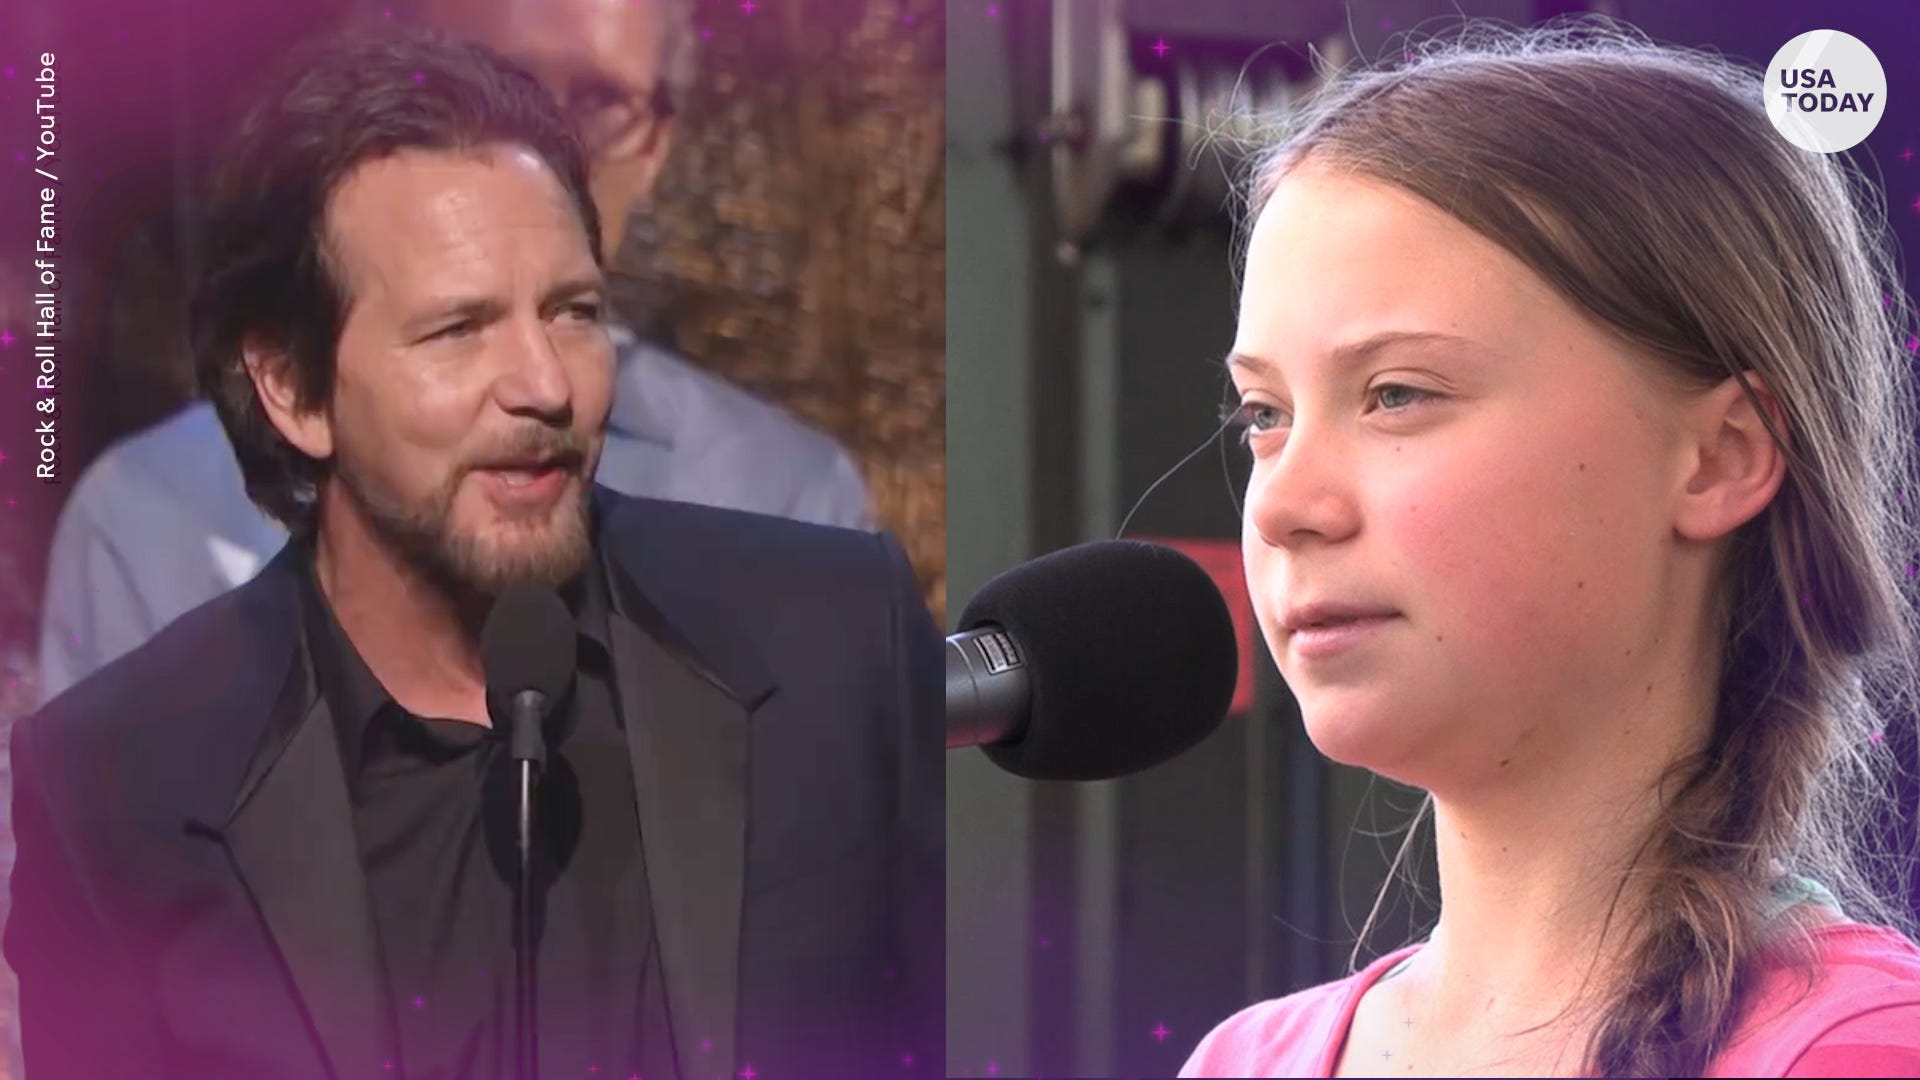 Greta Thunberg brings climate change activism to new Pearl Jam video